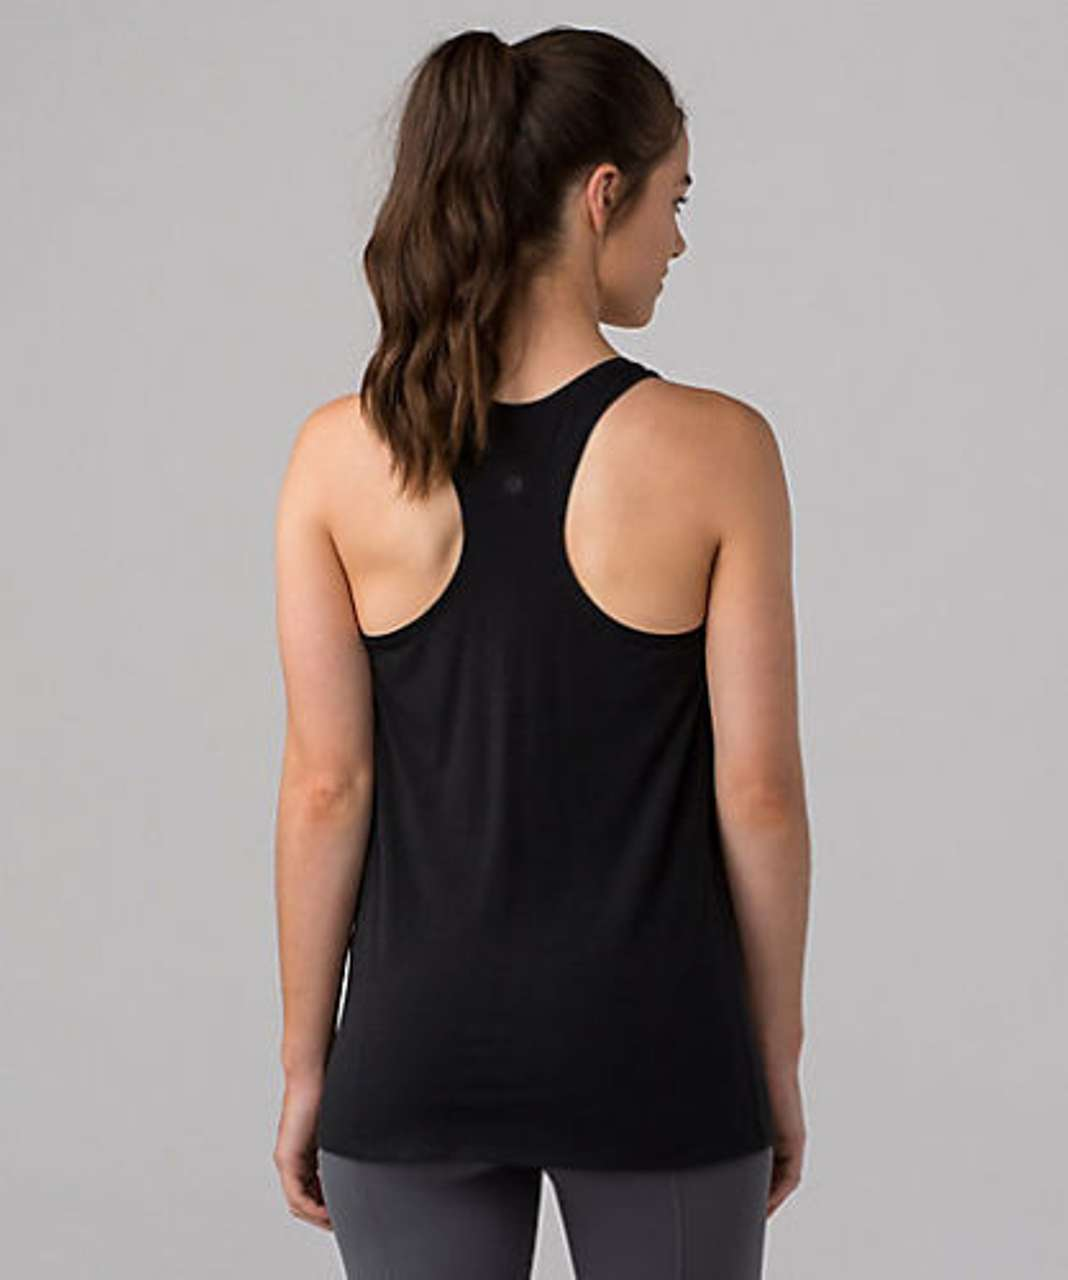 Lululemon Love Tank *Positivity - Black